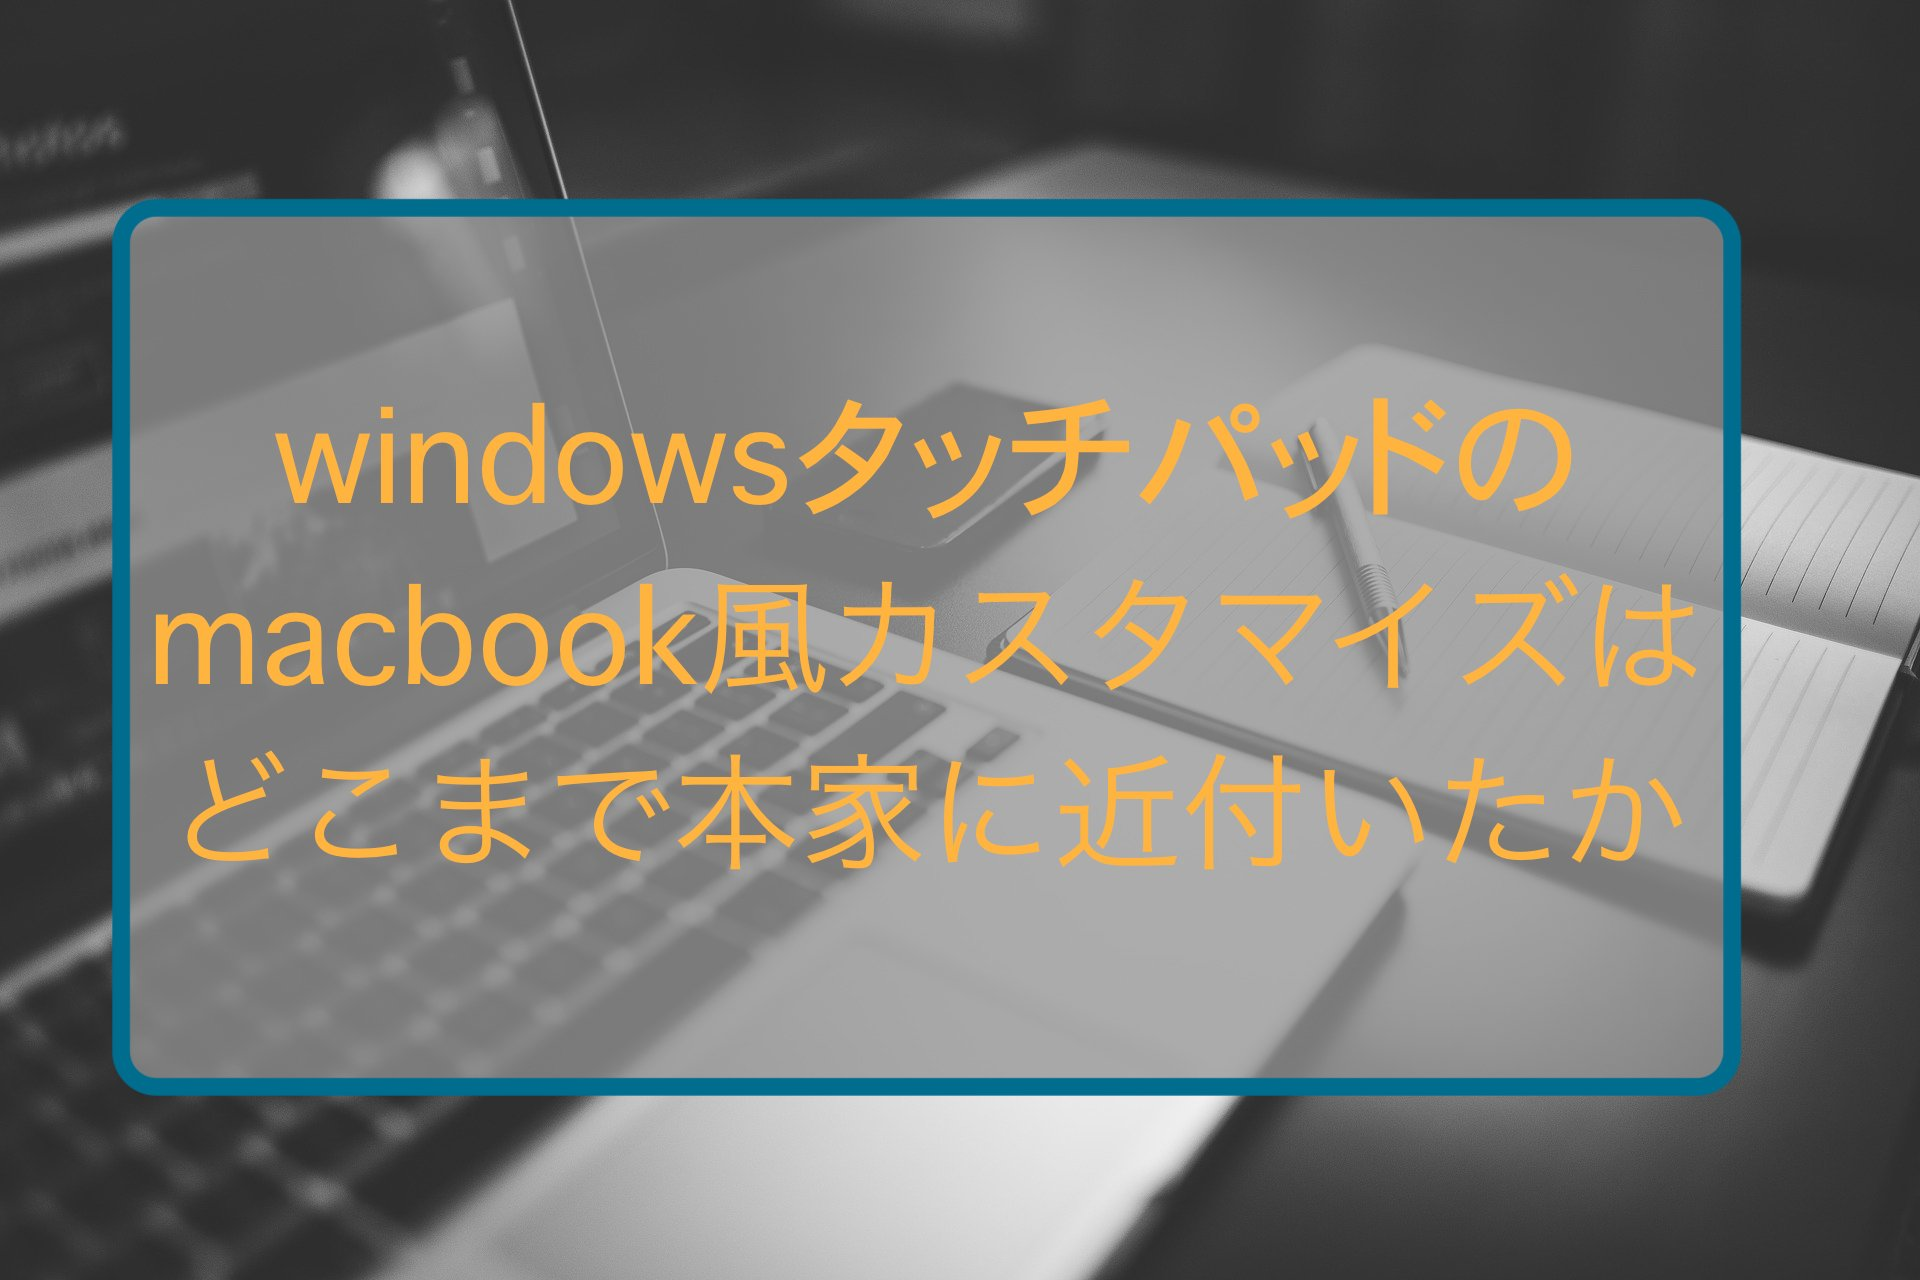 windows touchpad MacBook